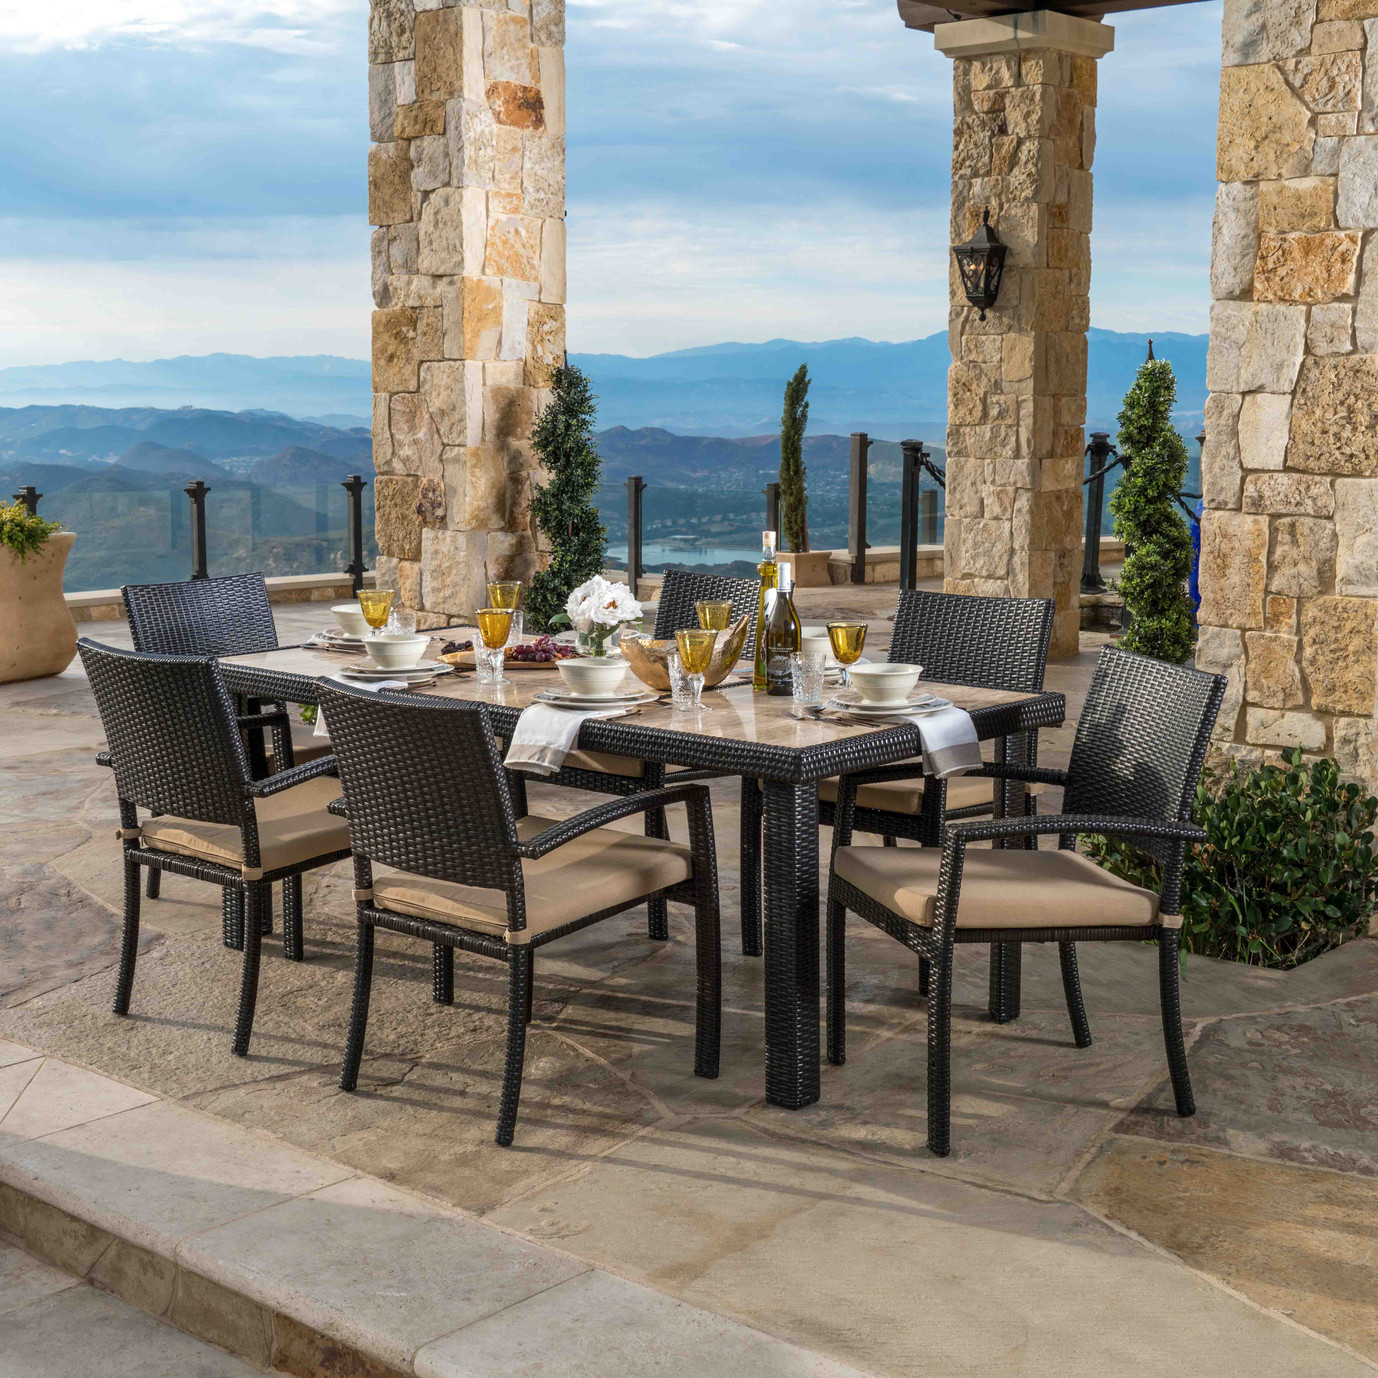 Portofino™ Comfort 18pc Estate Dining Set - Heather Beige